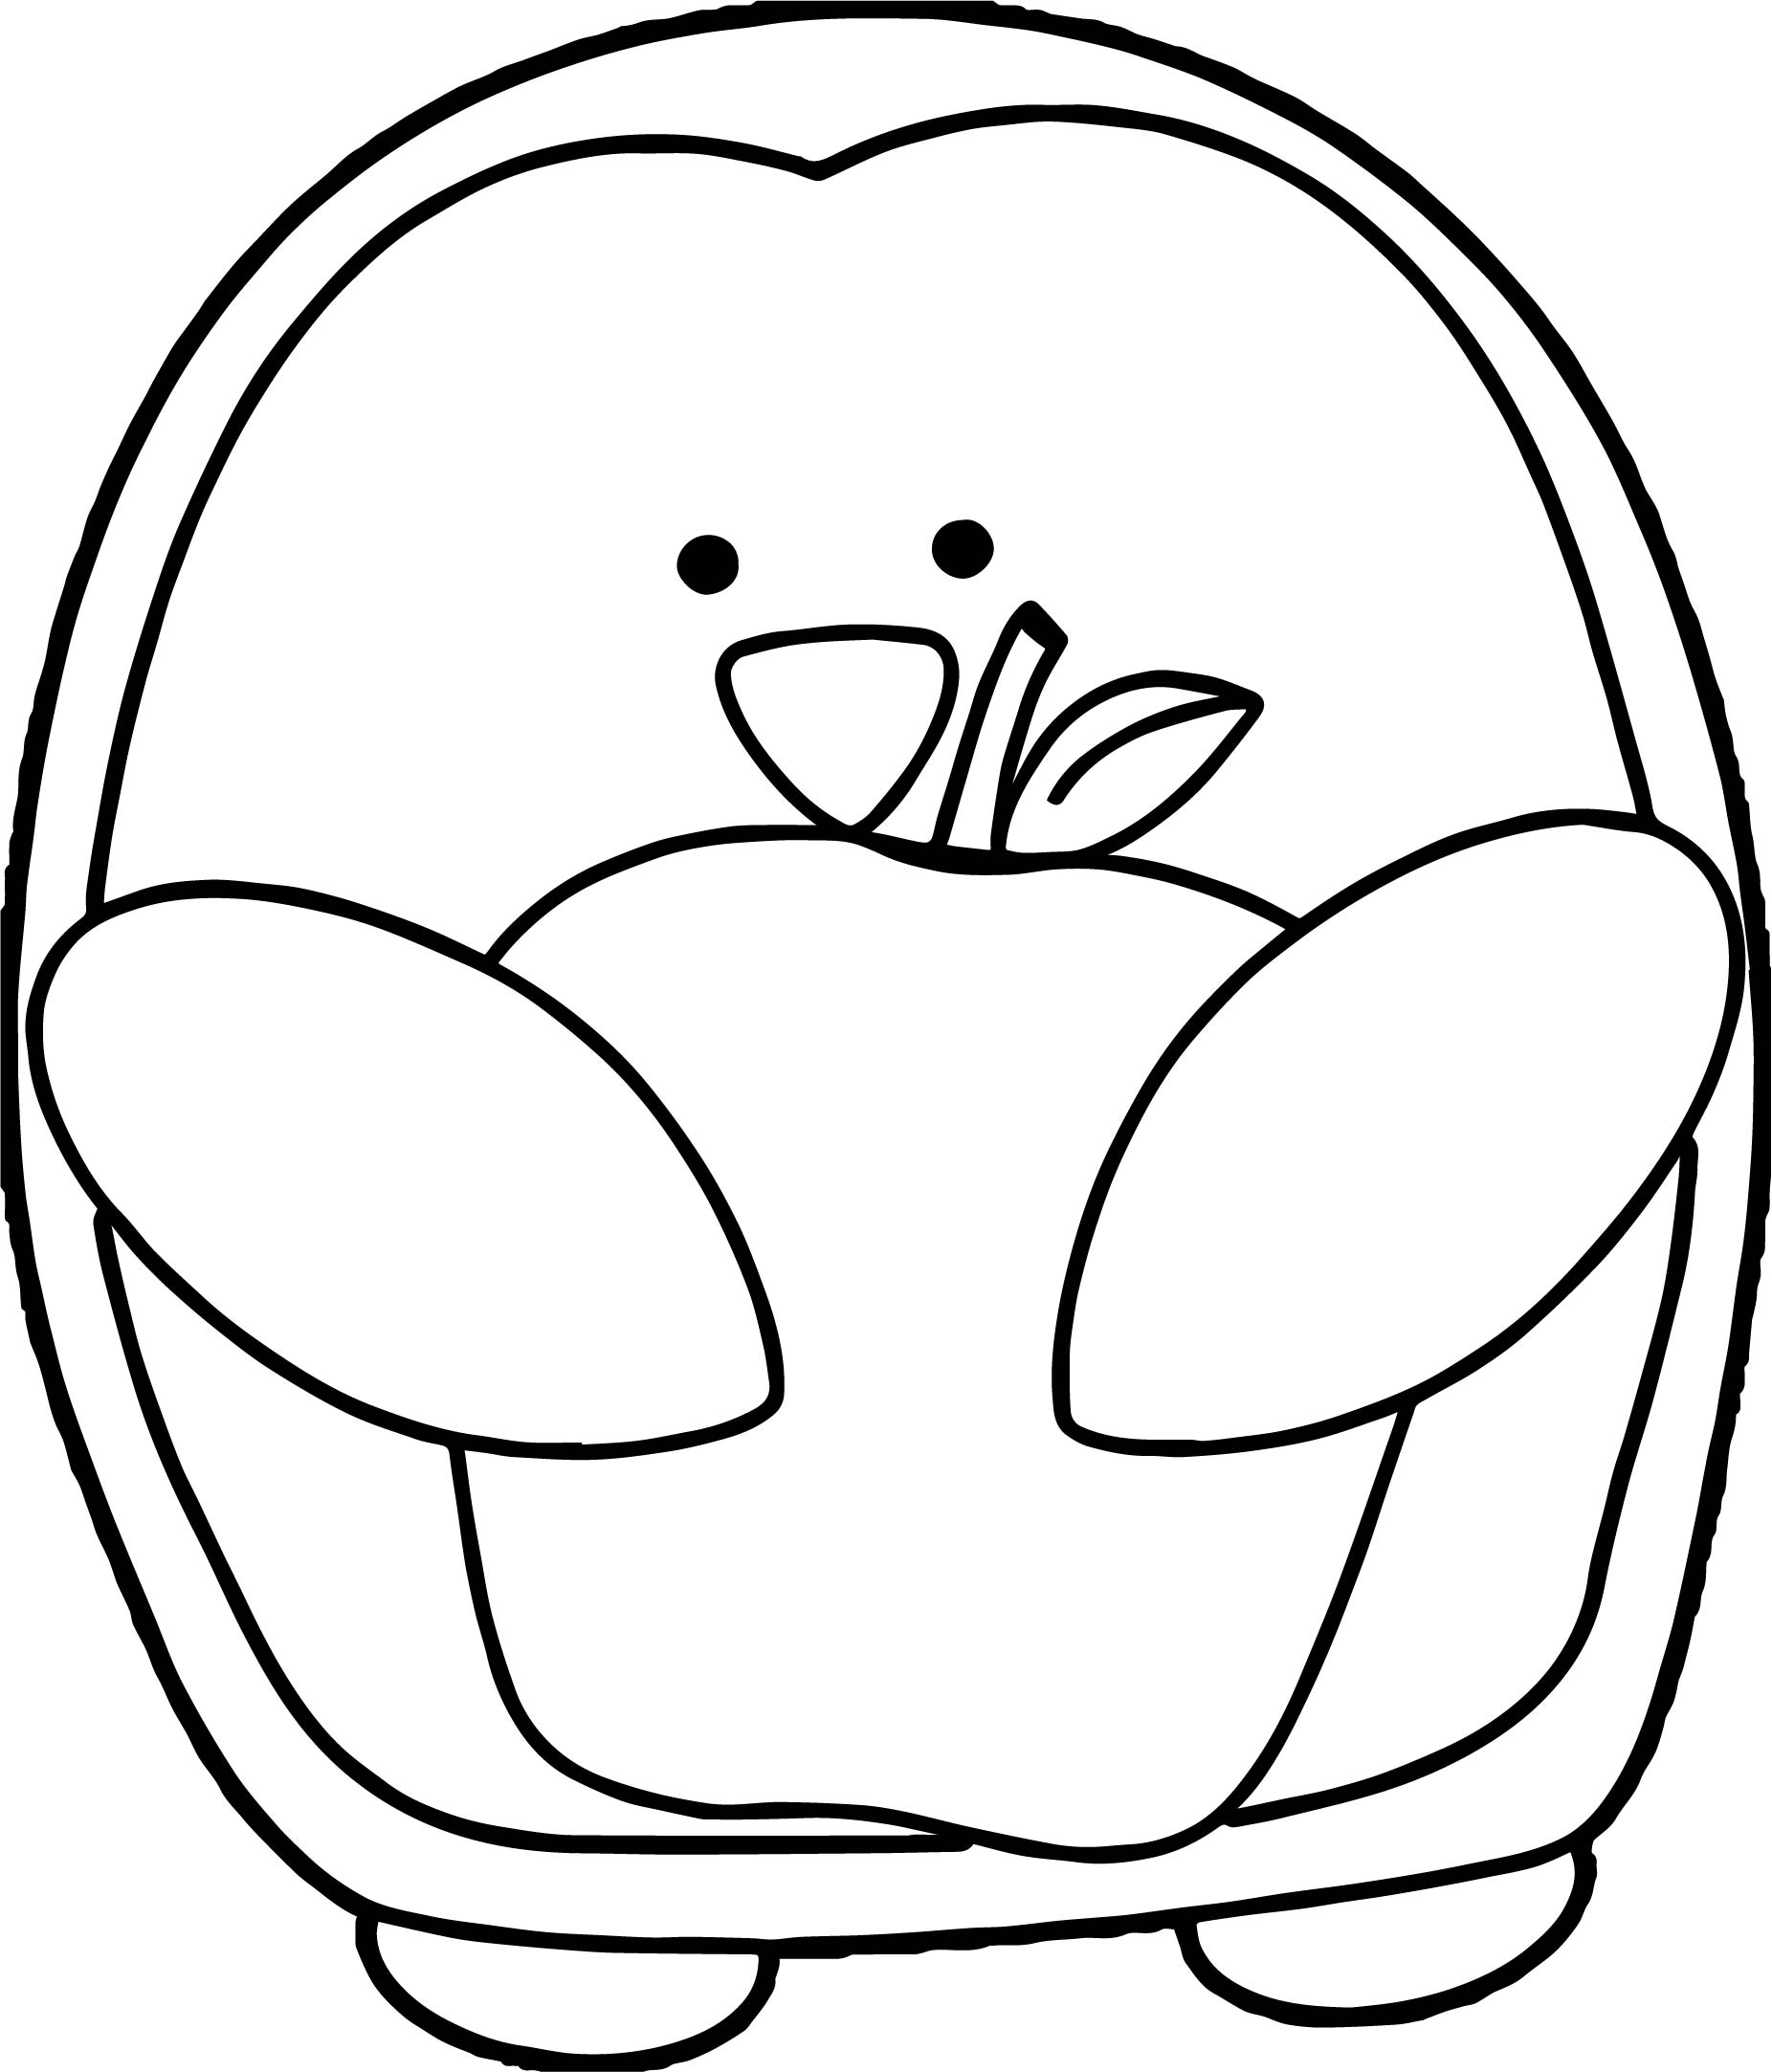 Penguin With Apple Coloring Page